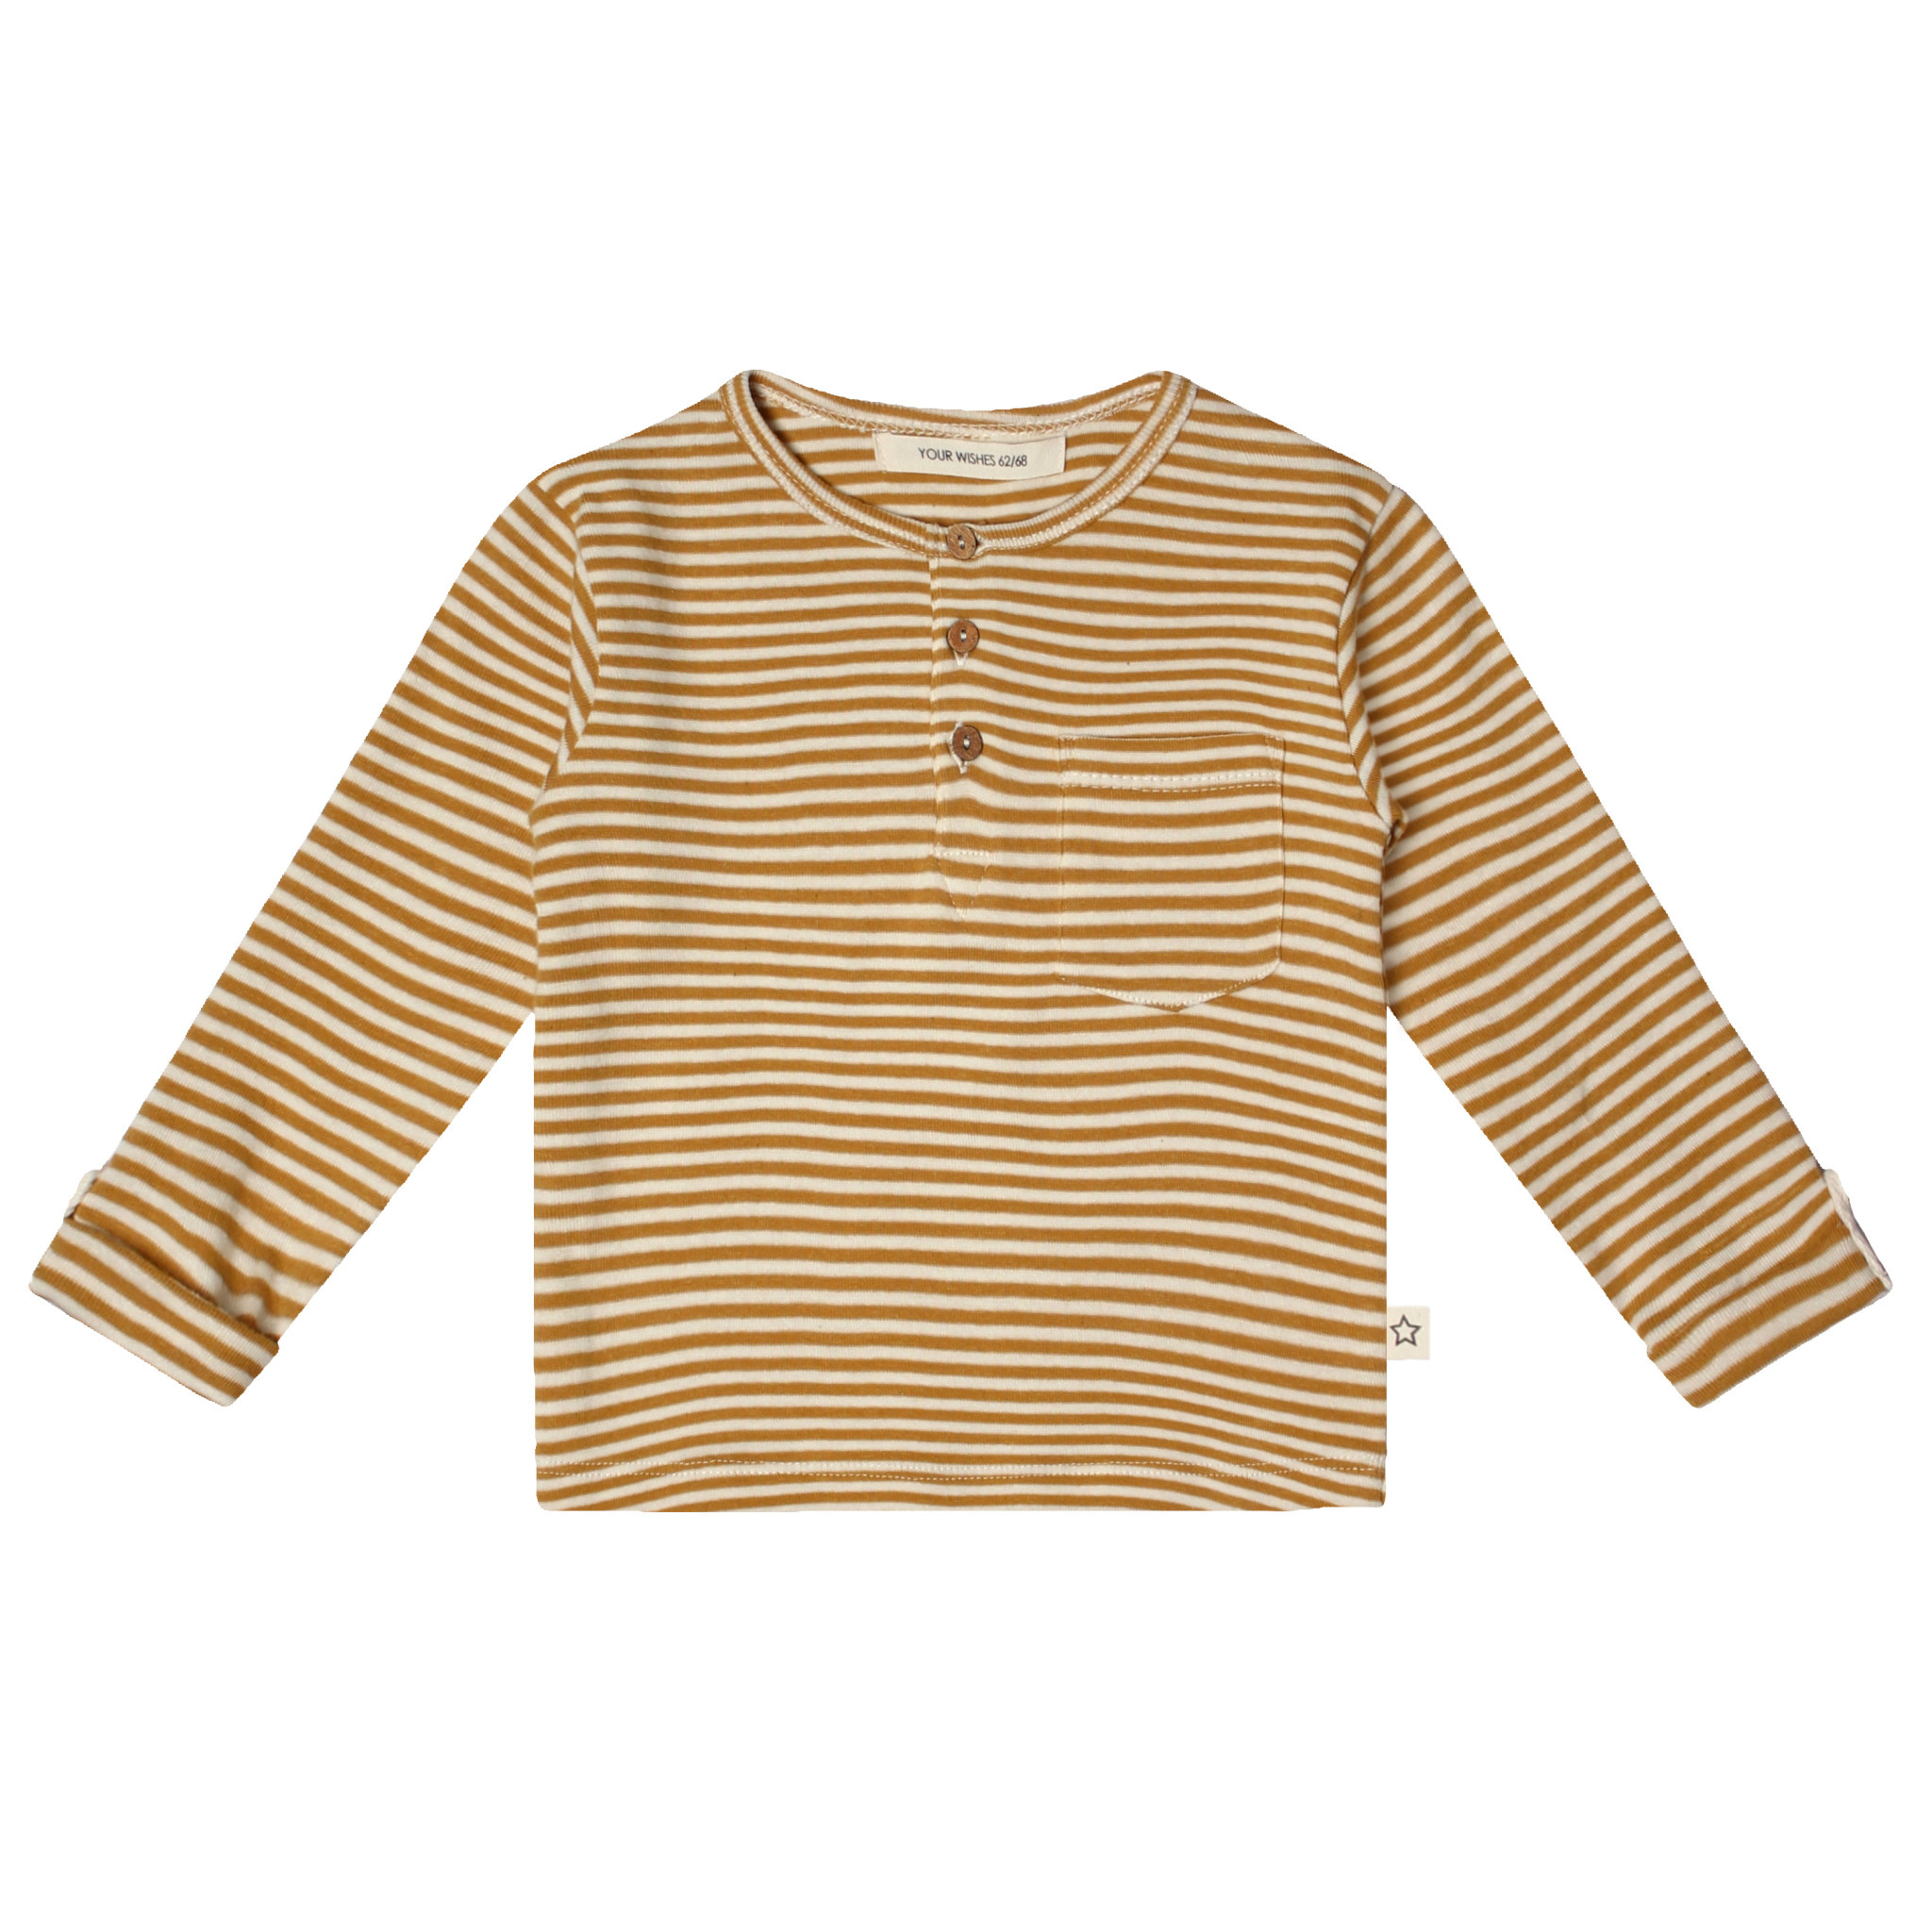 Your Wishes Gold Stripes Grandpa Longsleeve